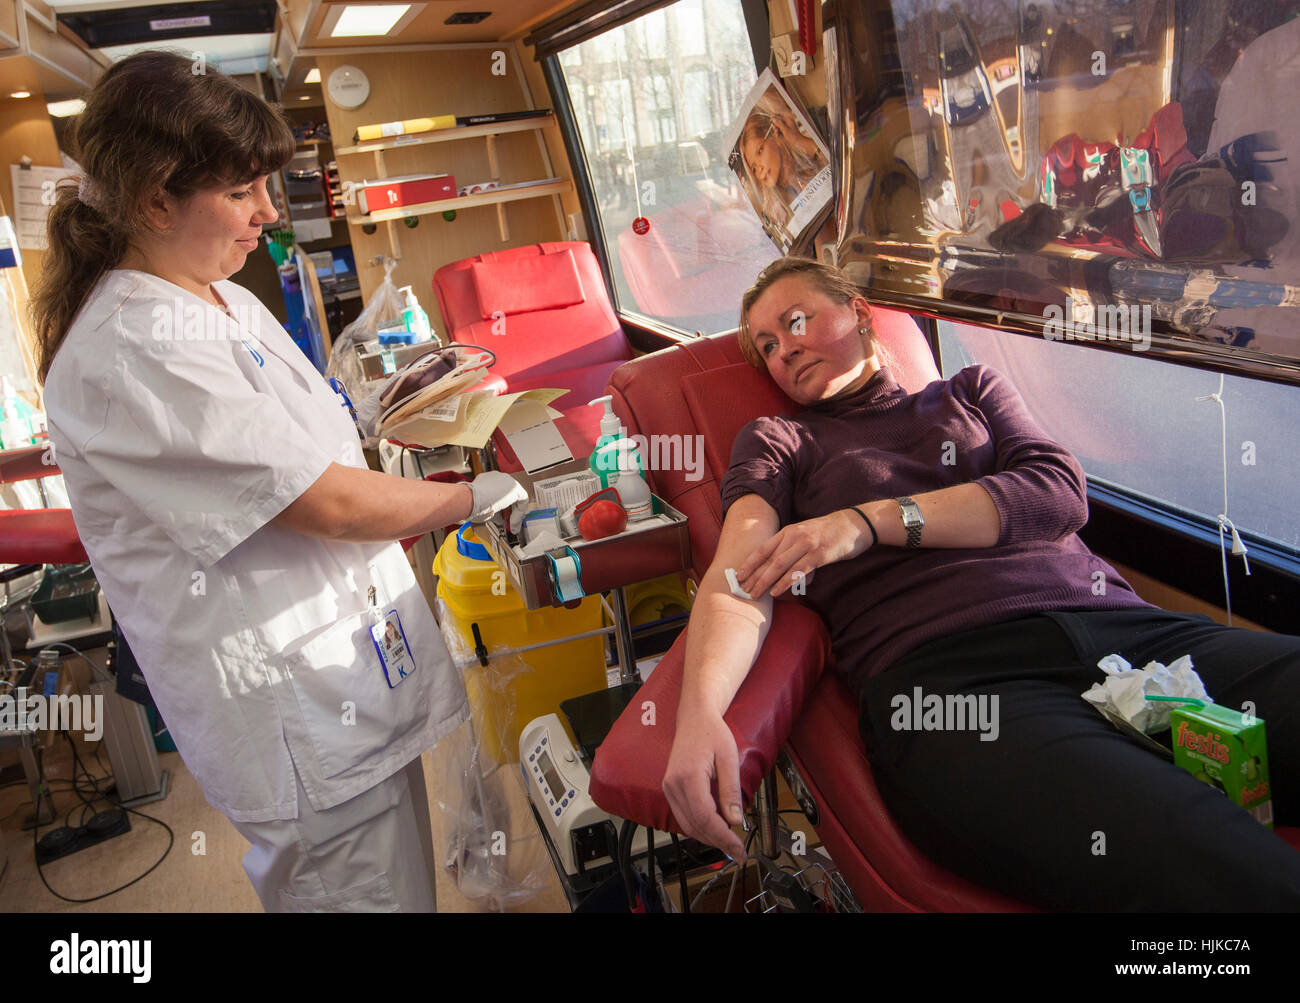 Blood donors visiting the blood bus to donate blood. - Stock Image